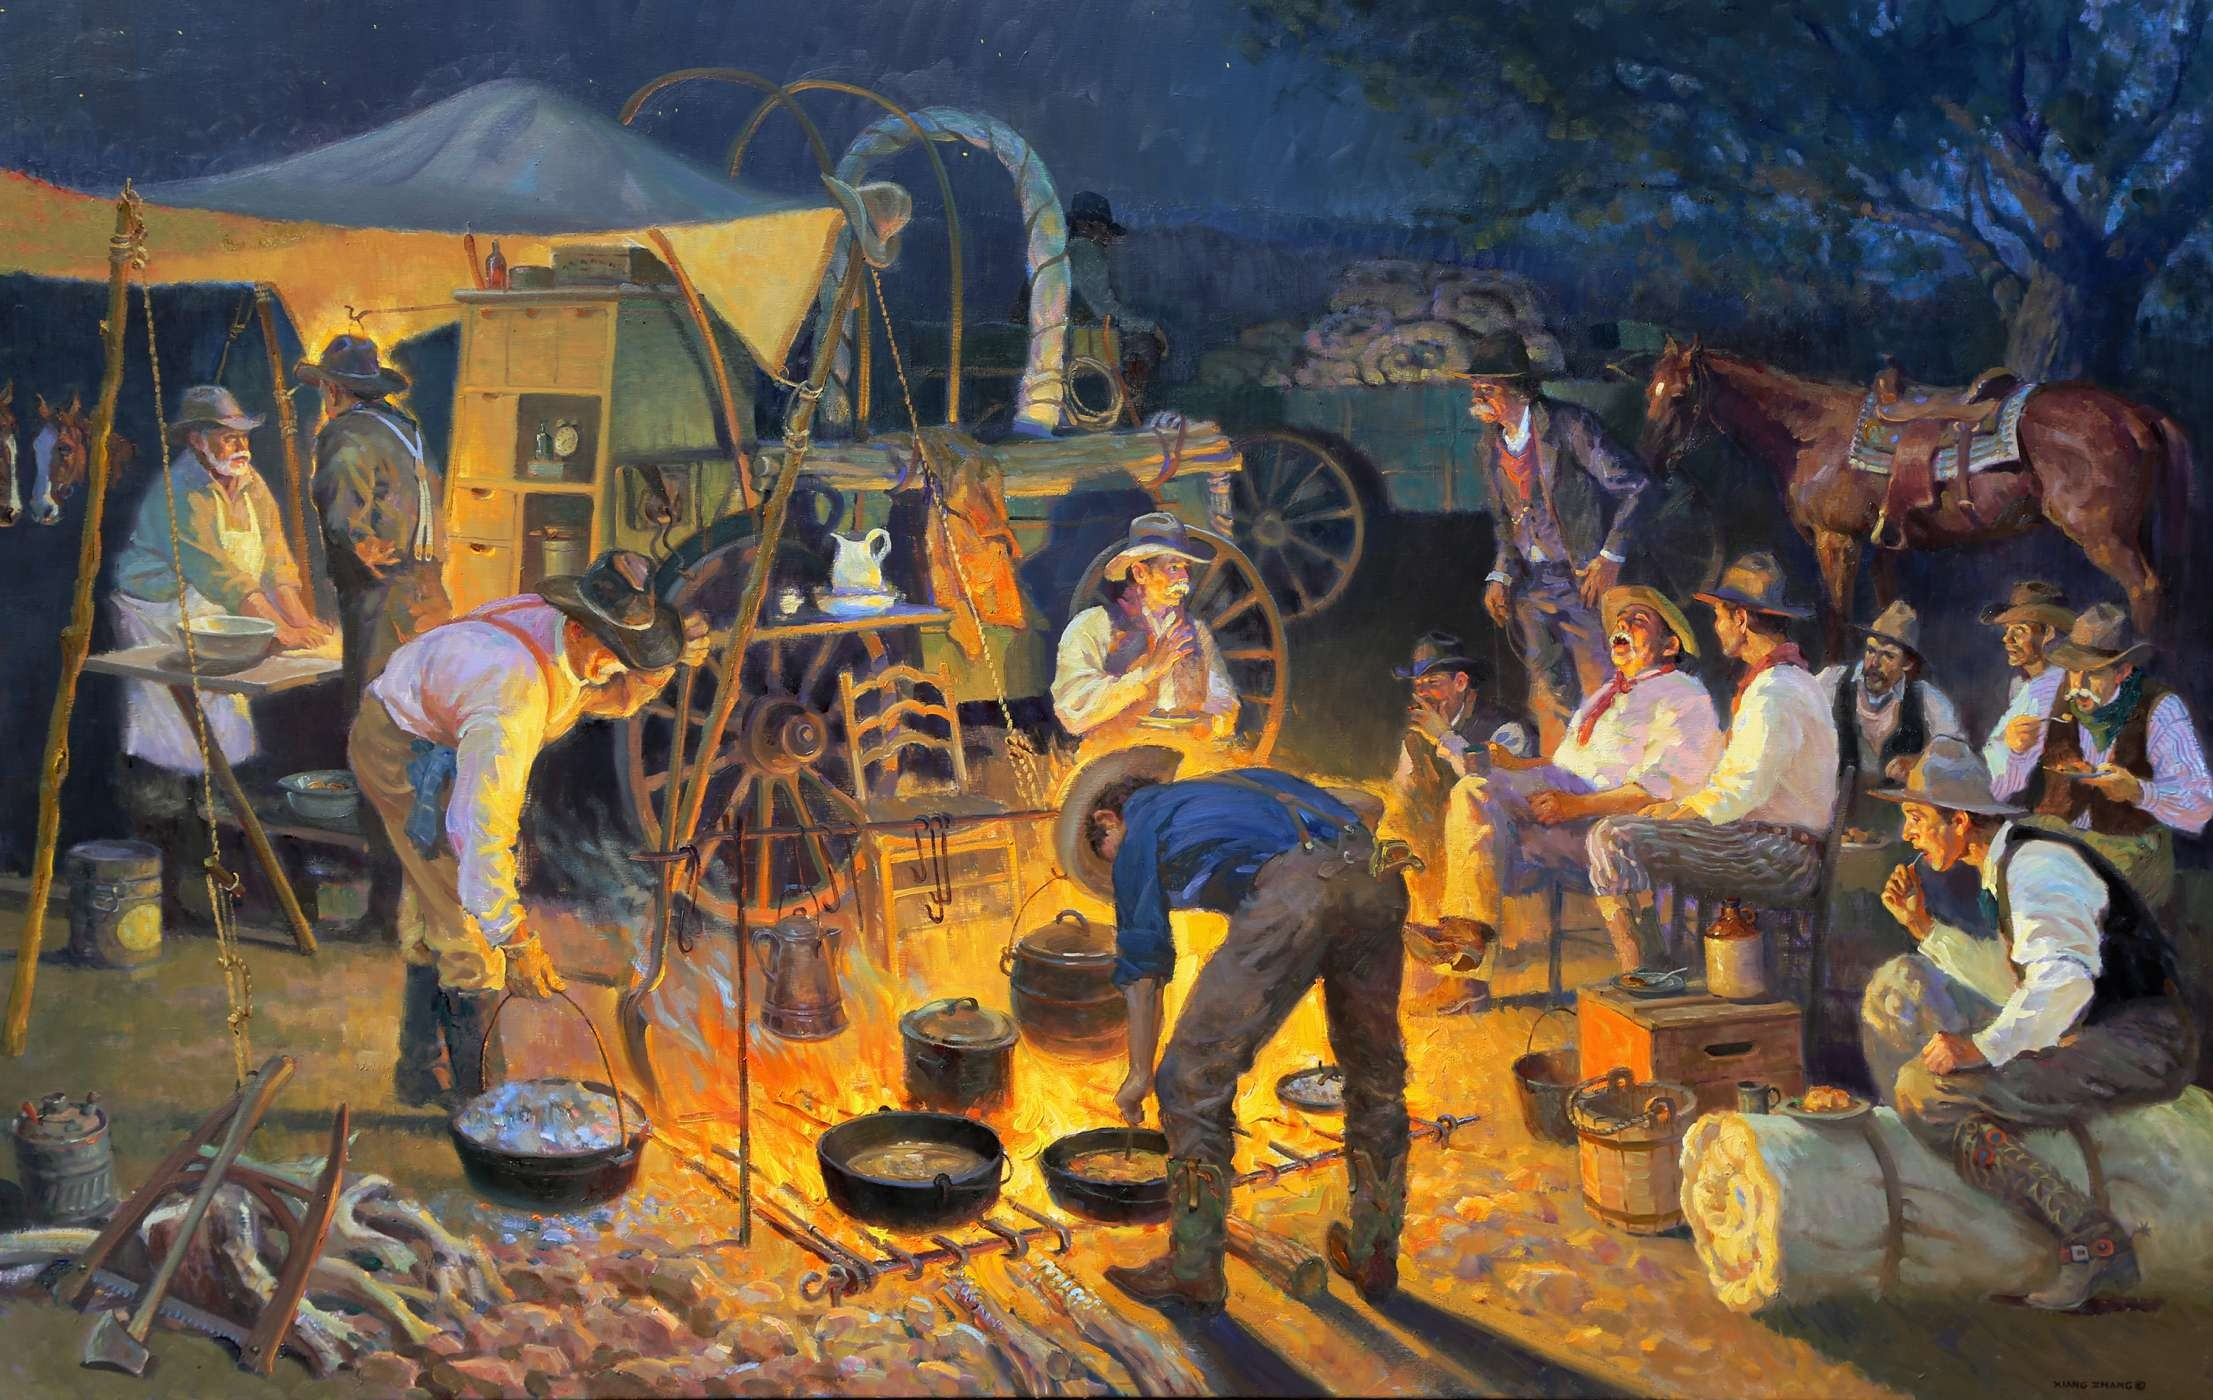 Western Oil Paintings by Xiang Zhang